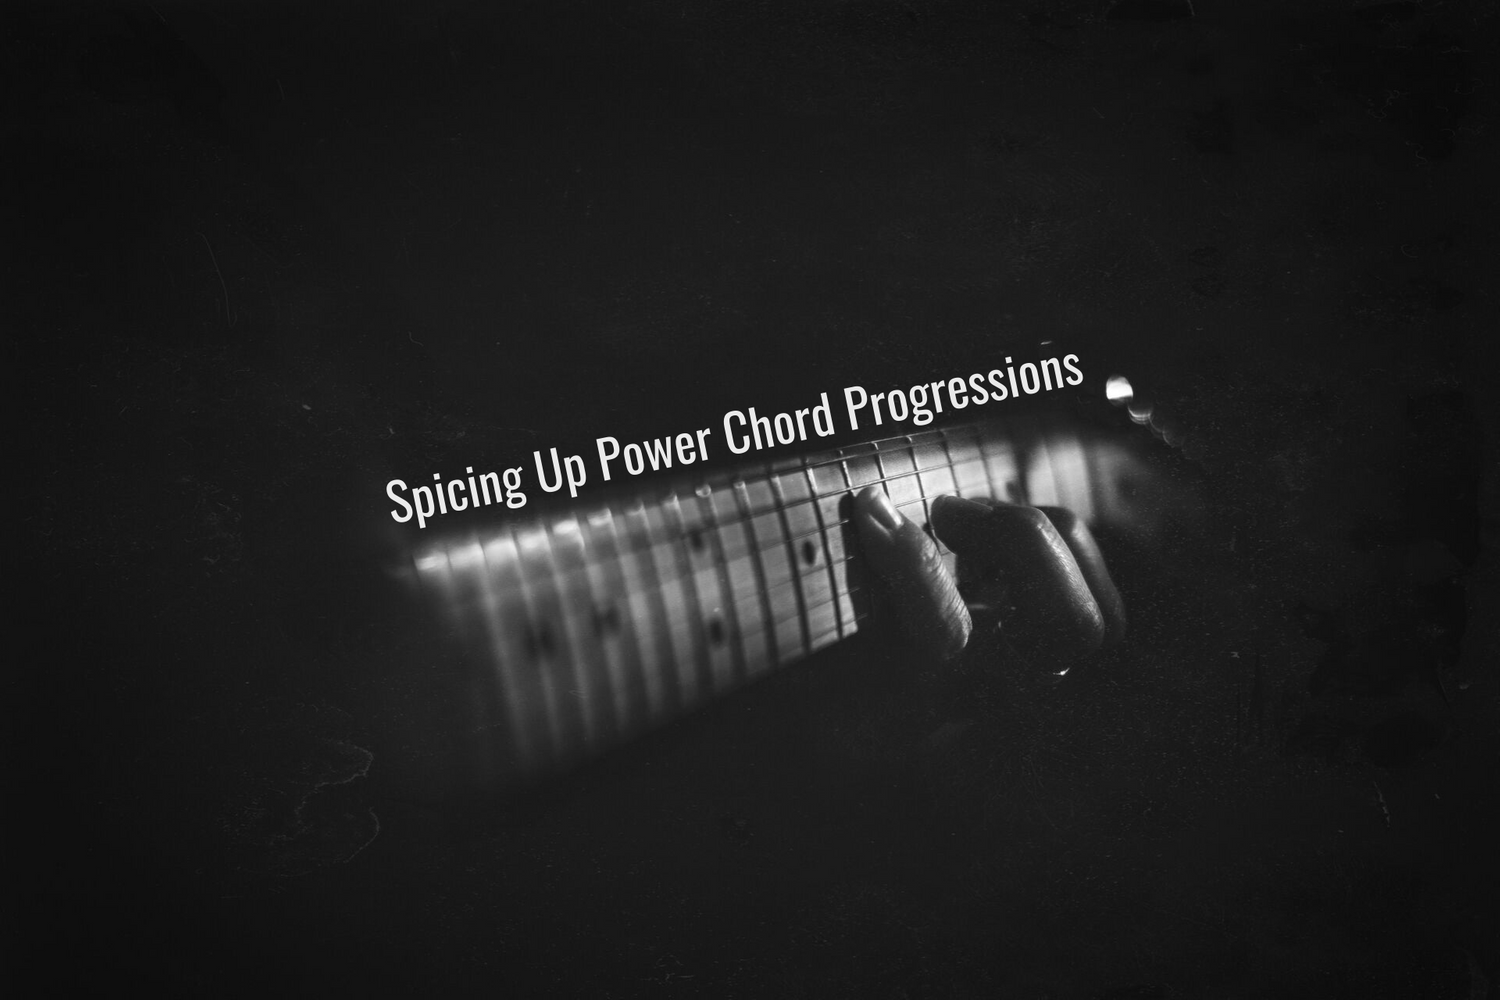 Spice Up Power Chord Progressions